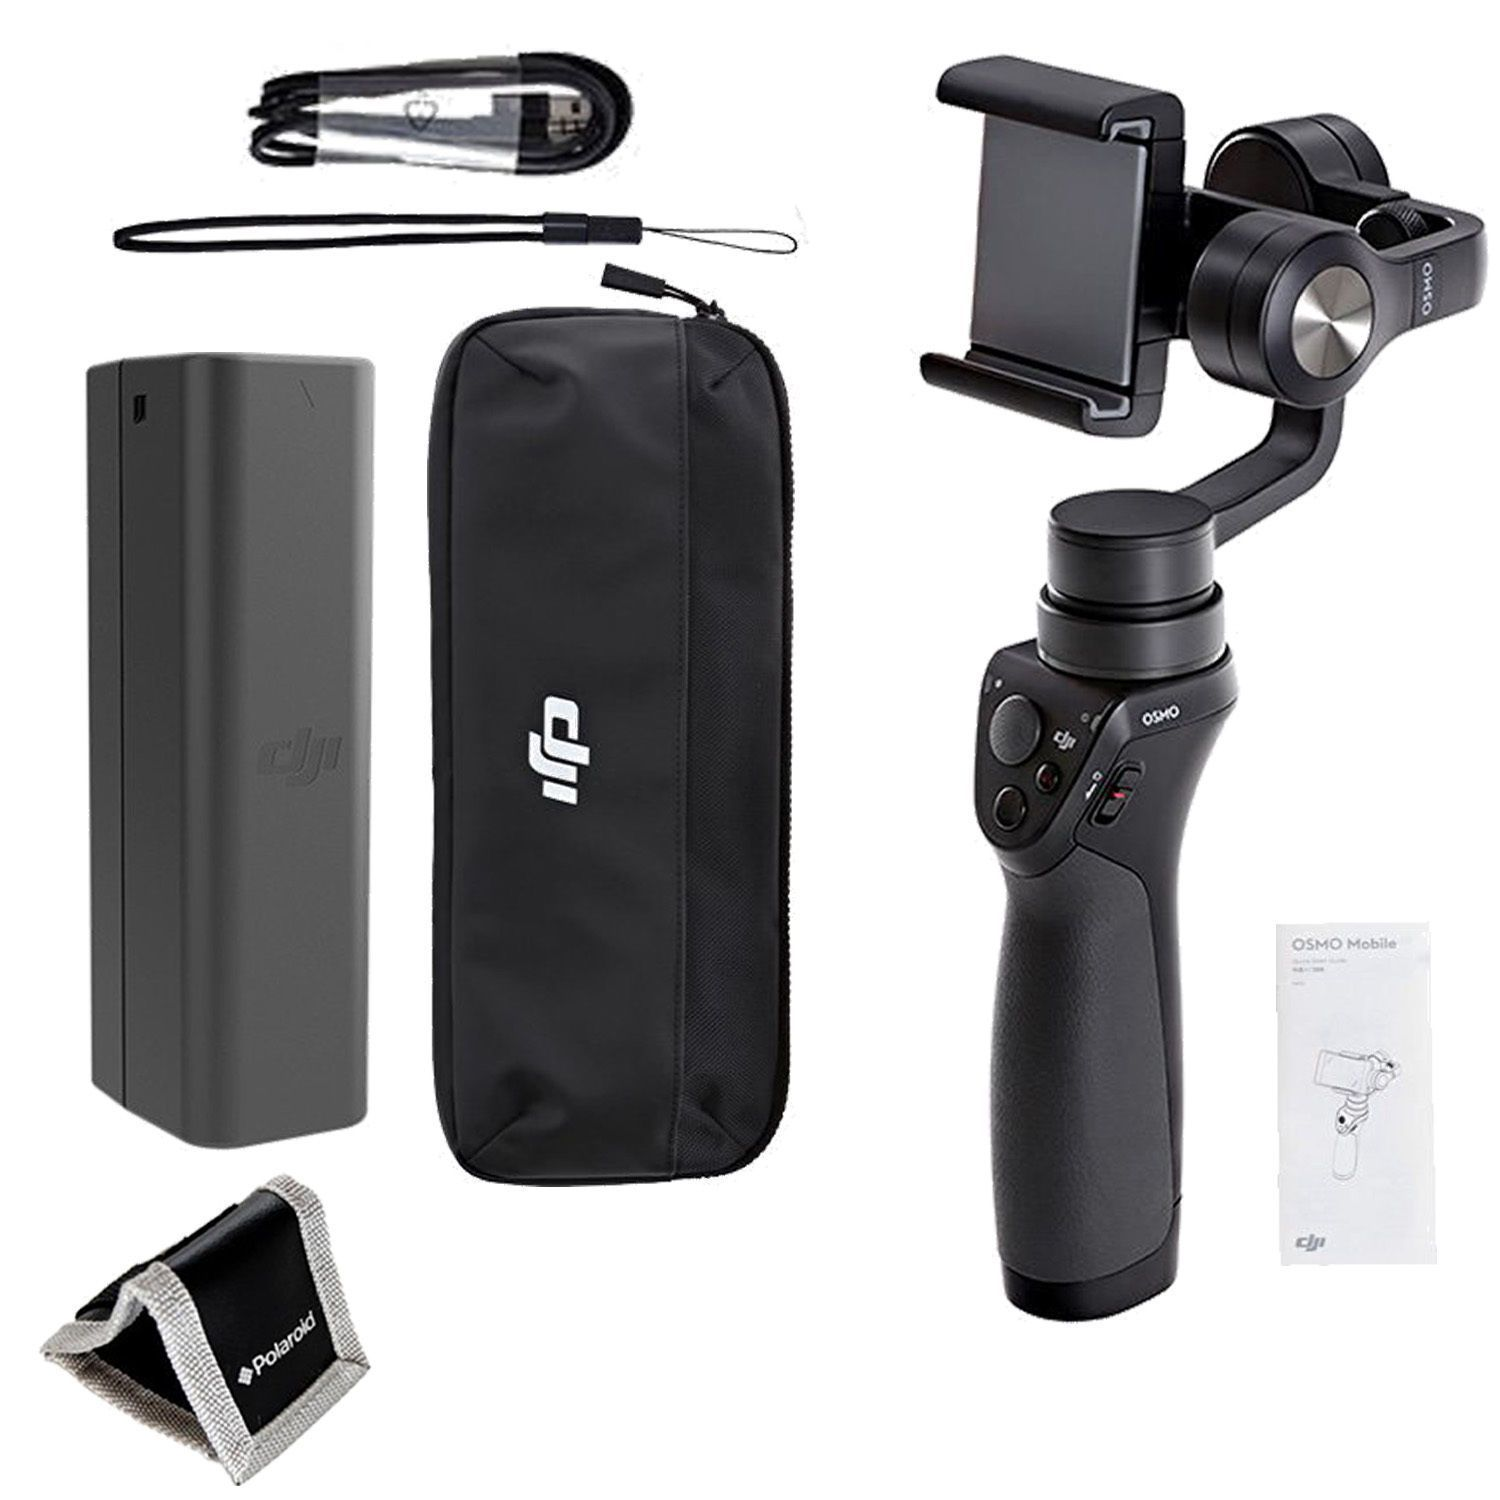 Dji Phone Camera Gimbal Osmo Mobile Kit Products Pinterest Silver With Spare Intelligent Battery Bolsas Para Cmera